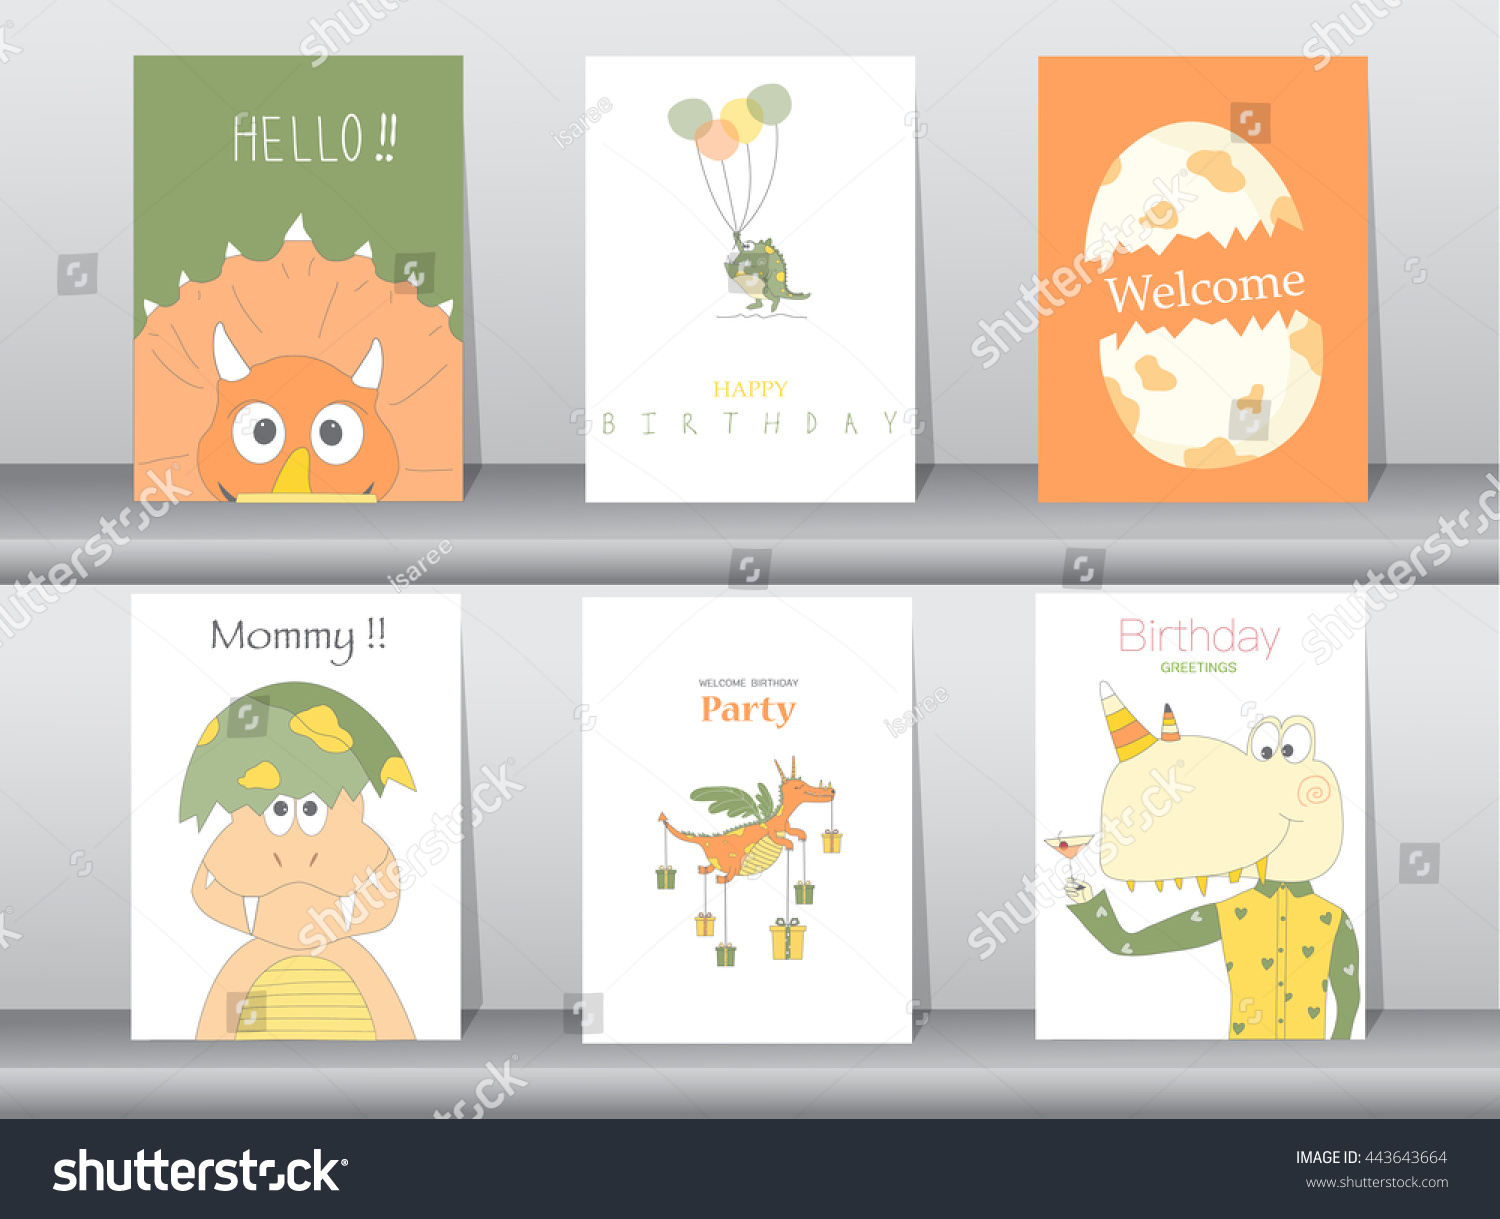 Set of birthday cards poster template greeting cards animals dinosaurs eggs Vector illustrations